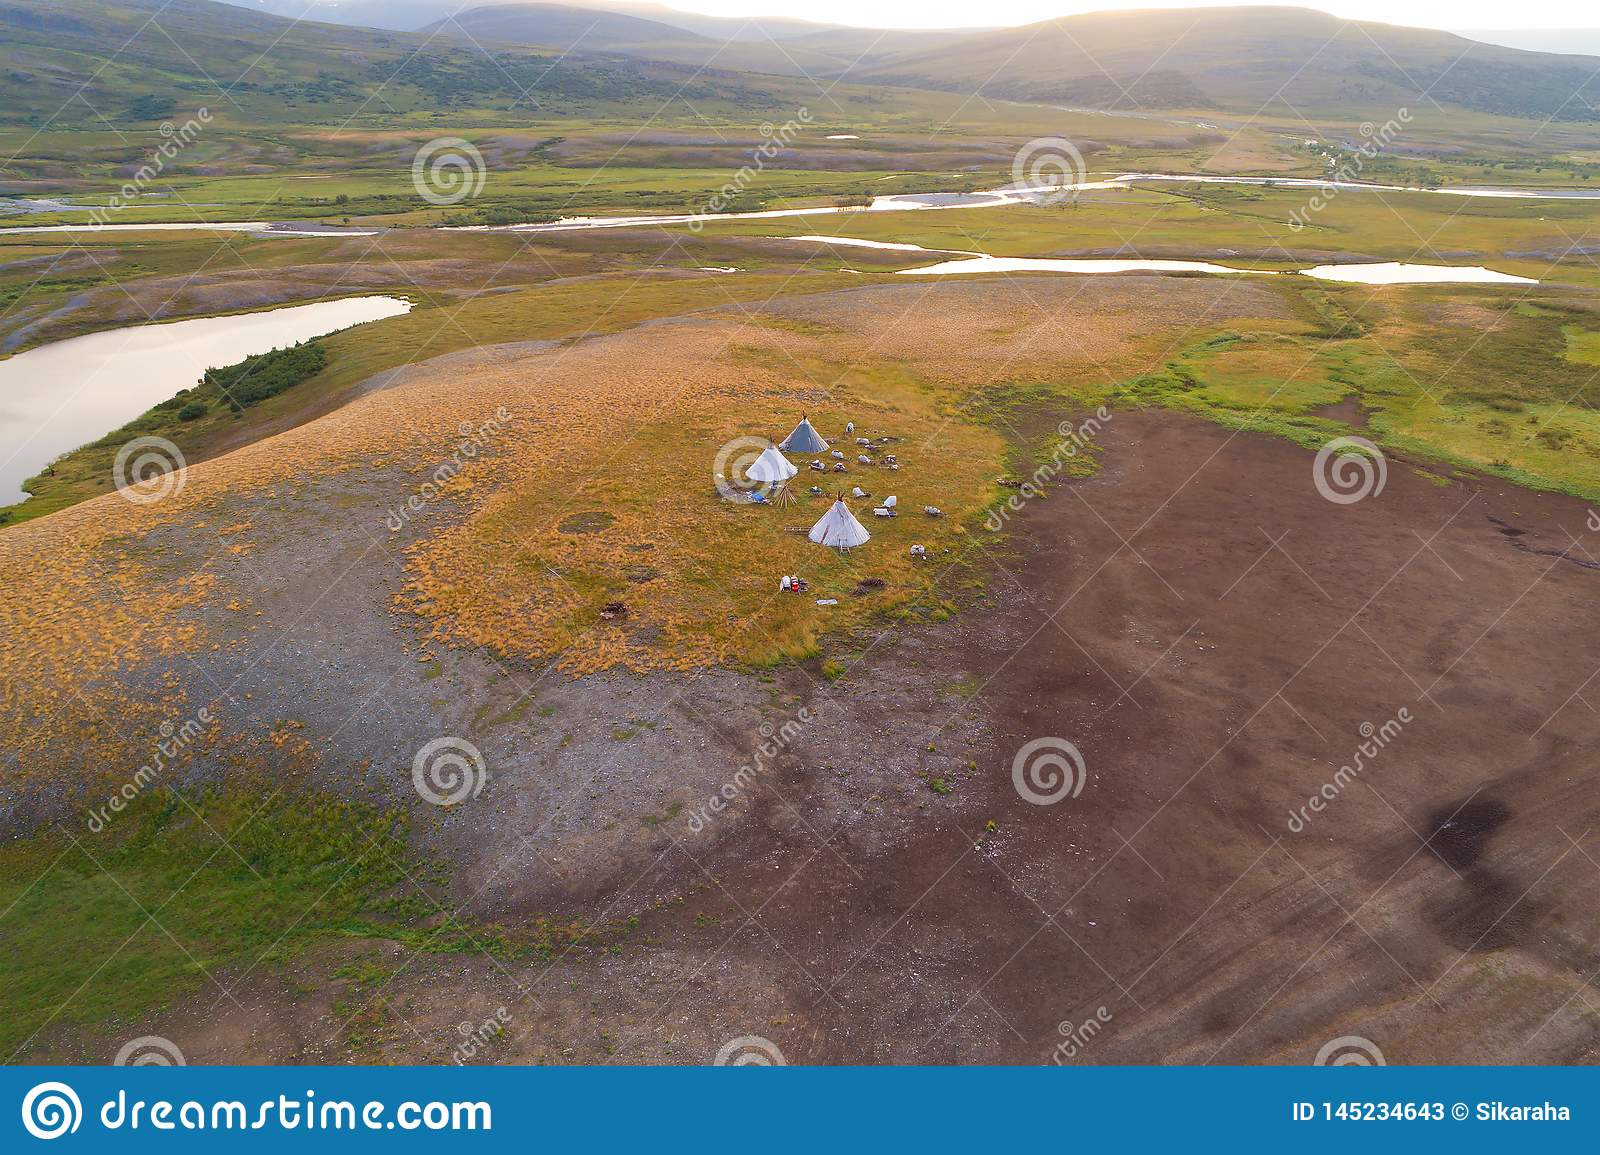 View from height on a settlement of nomads reindeer breeders in the valley of the Longotjyogan River aerial photography.